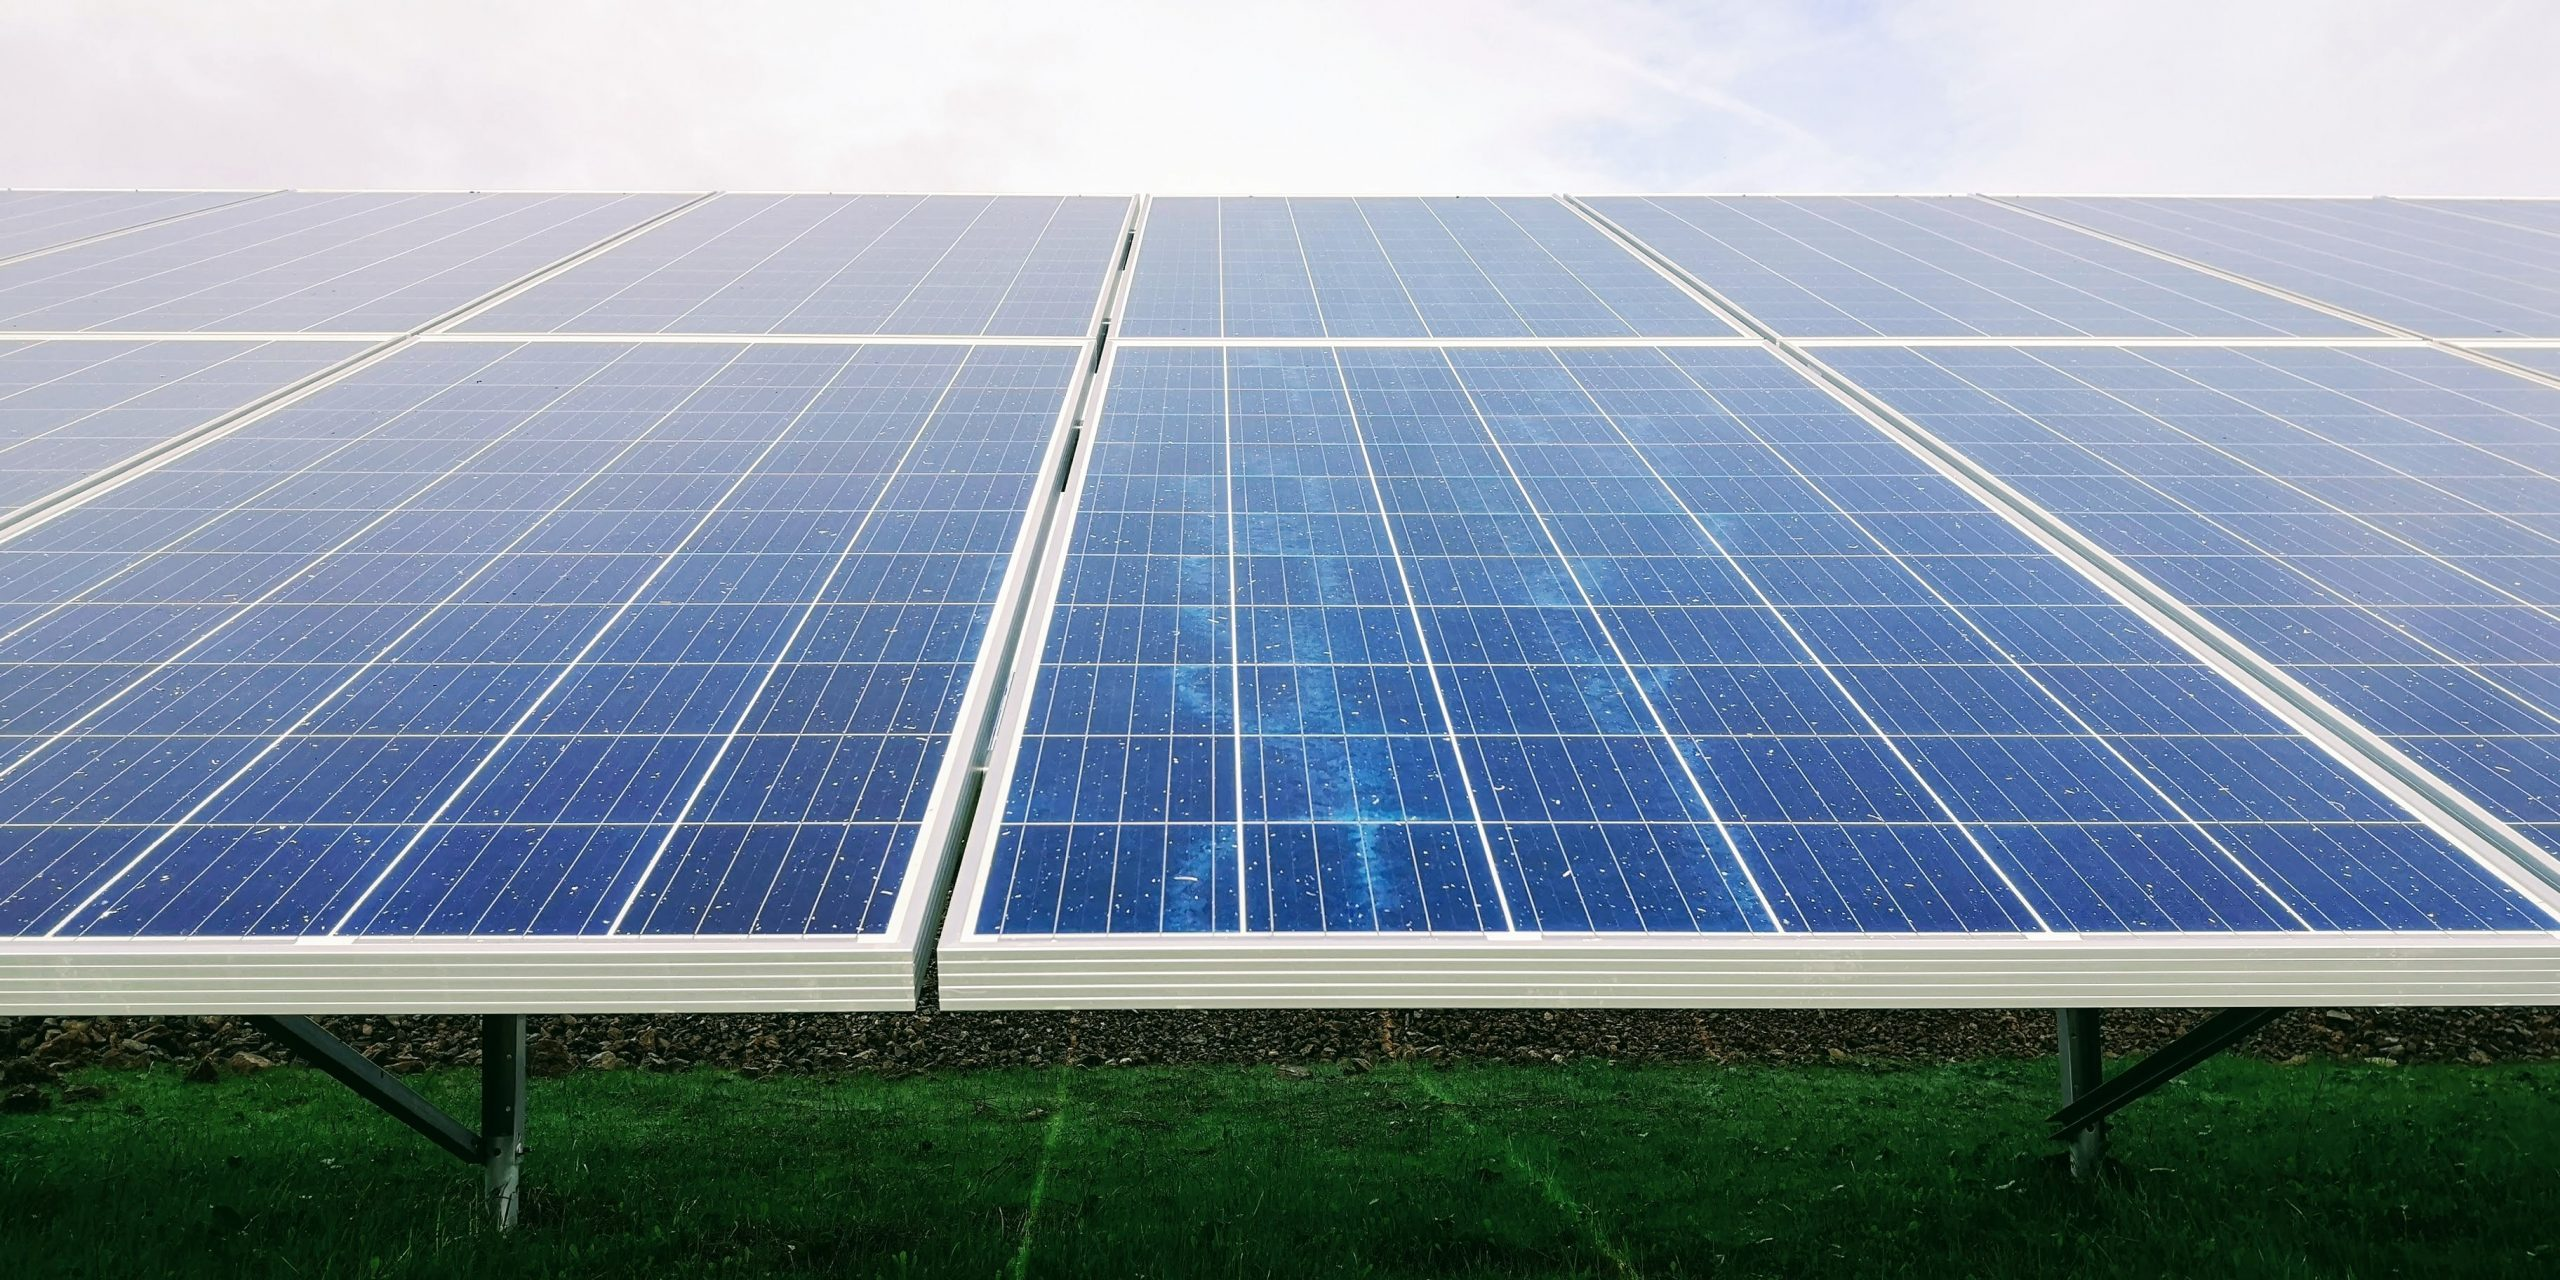 WATO SPEND $66M ON SOLAR AND BATTERIES FOR SCHOOLS, COMMUNITIES AND SOCIAL HOUSING